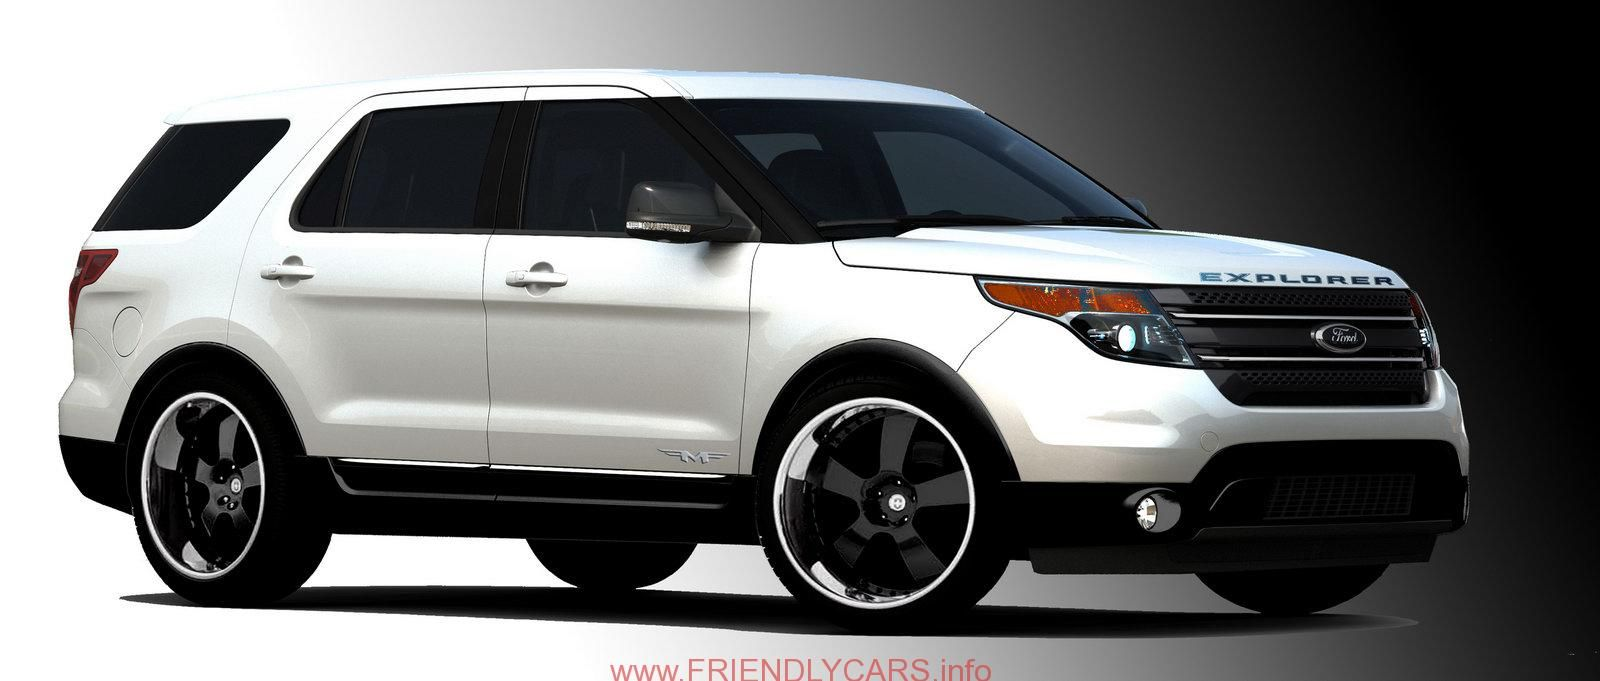 Awesome ford explorer 2011 interior car images hd 2011 customized ford explorer edge taurus fusions lincoln